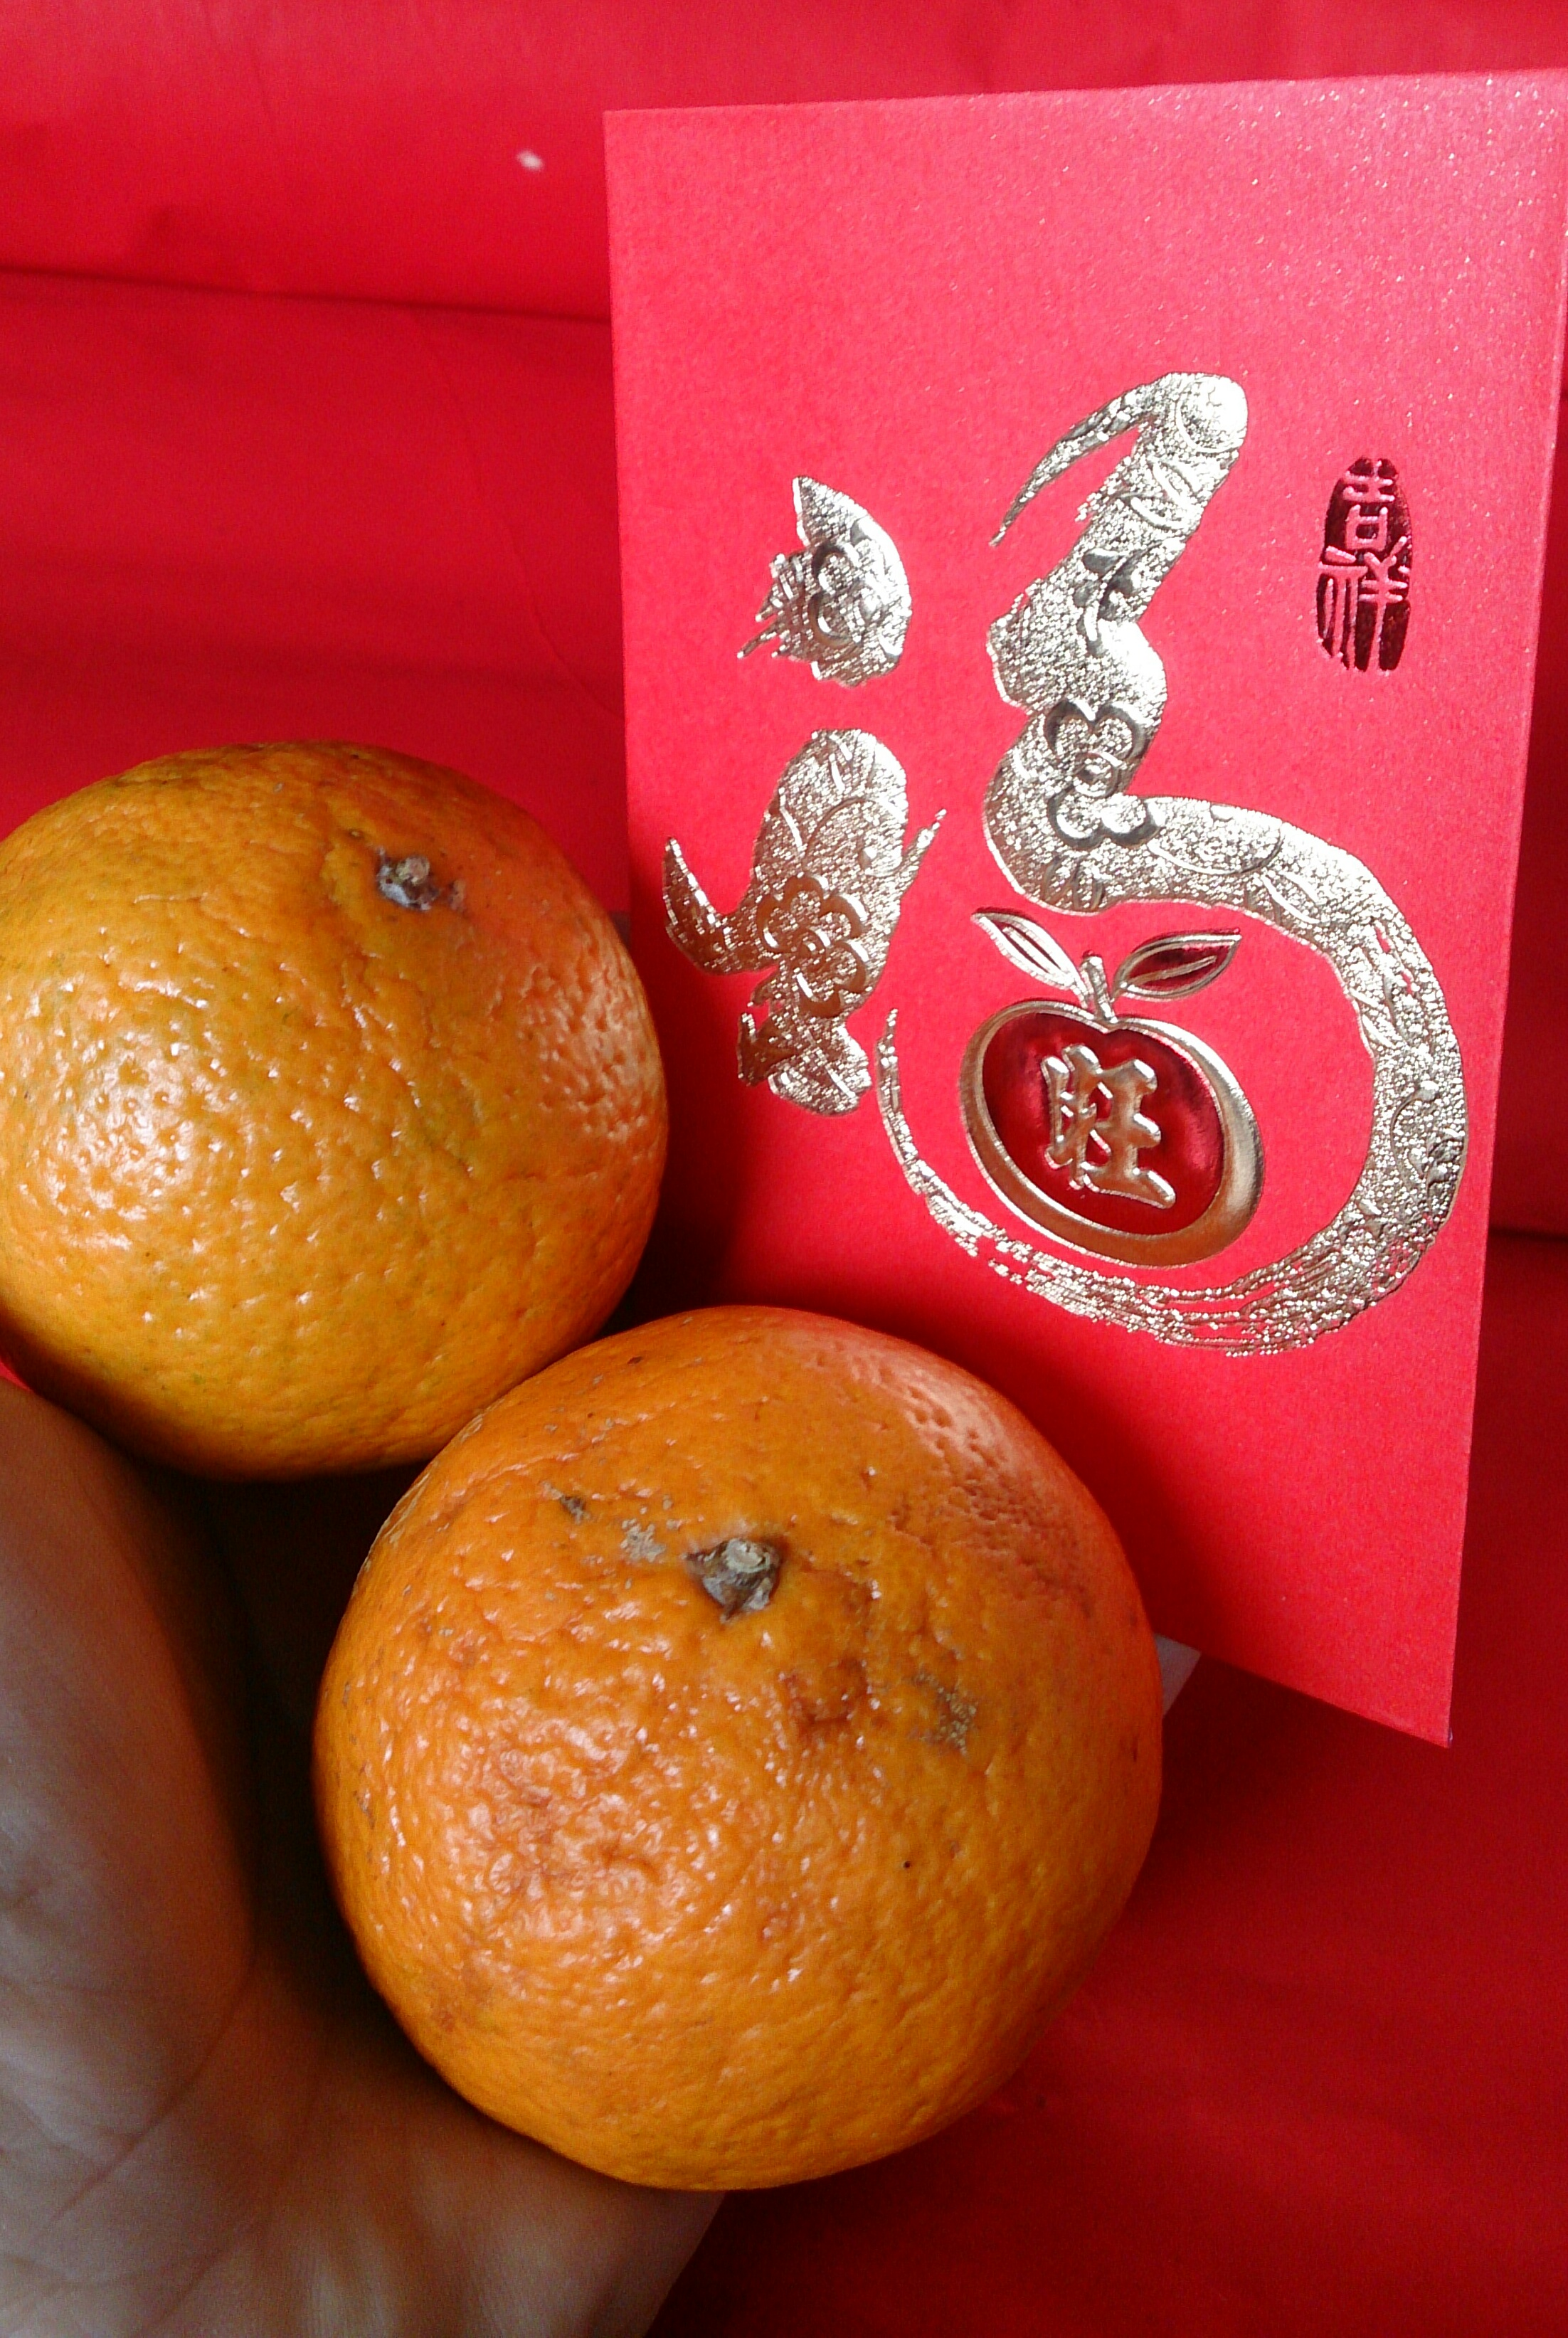 Oranges and red packet By ProjectManhattan - Own work, CC BY-SA 3.0, https://commons.wikimedia.org/w/index.php?curid=30756126